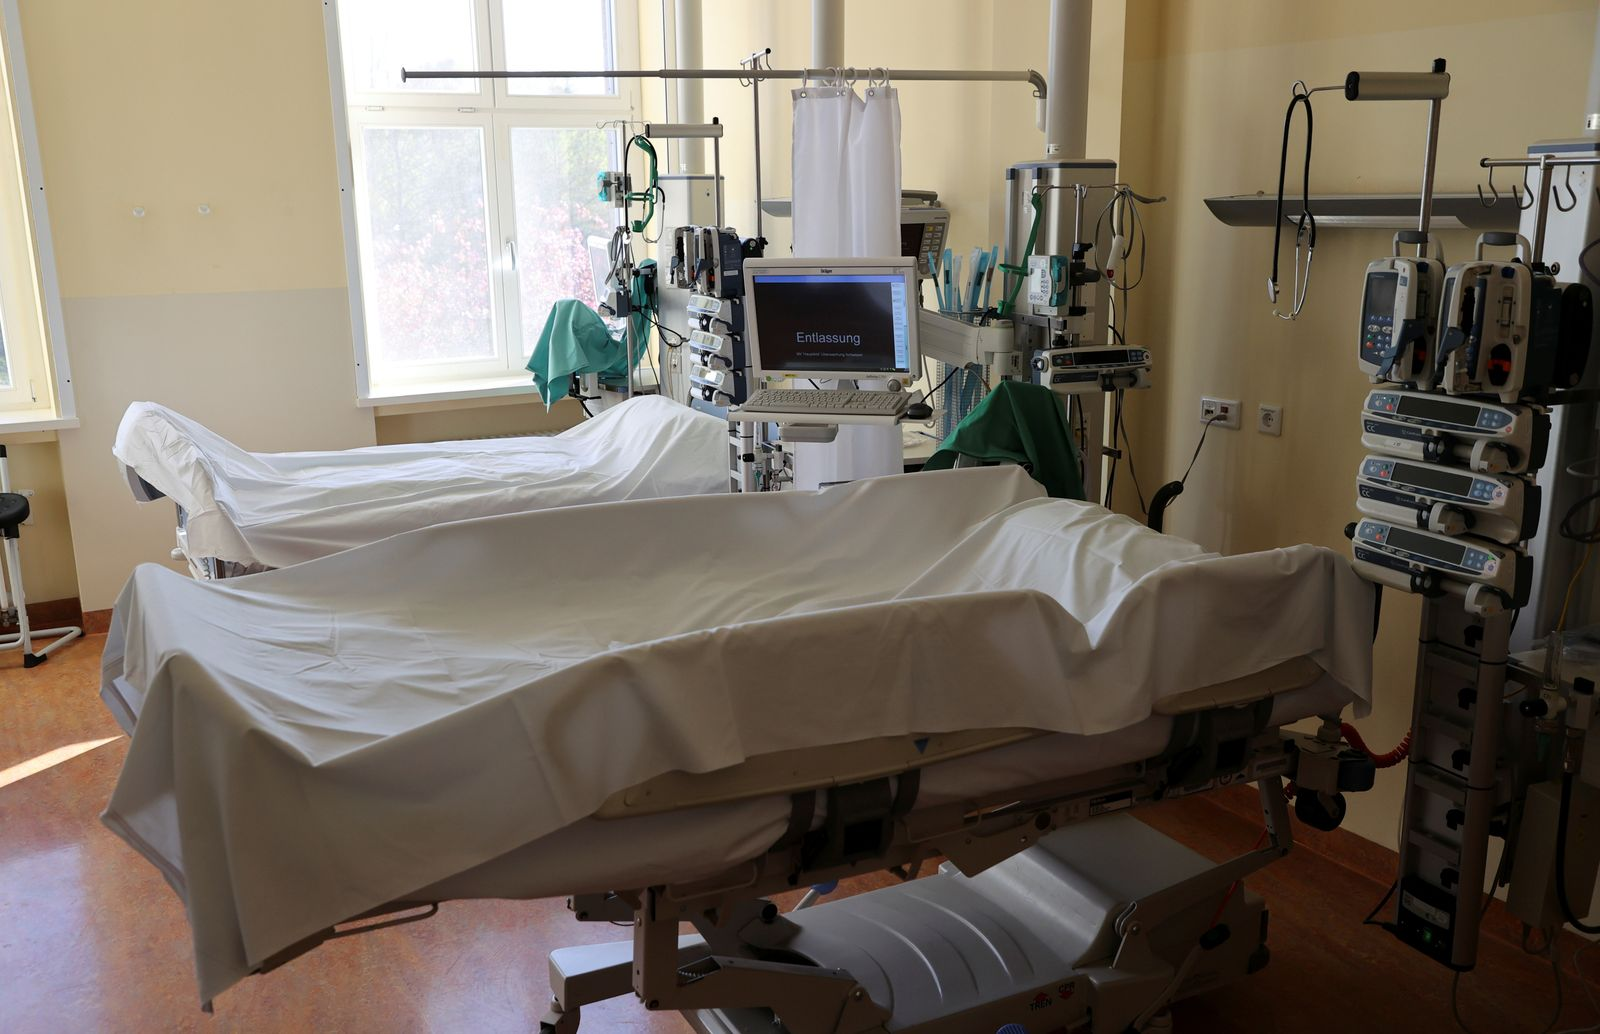 COVID-19 intensive care unit at the Havelhoehe community hospital in Berlin